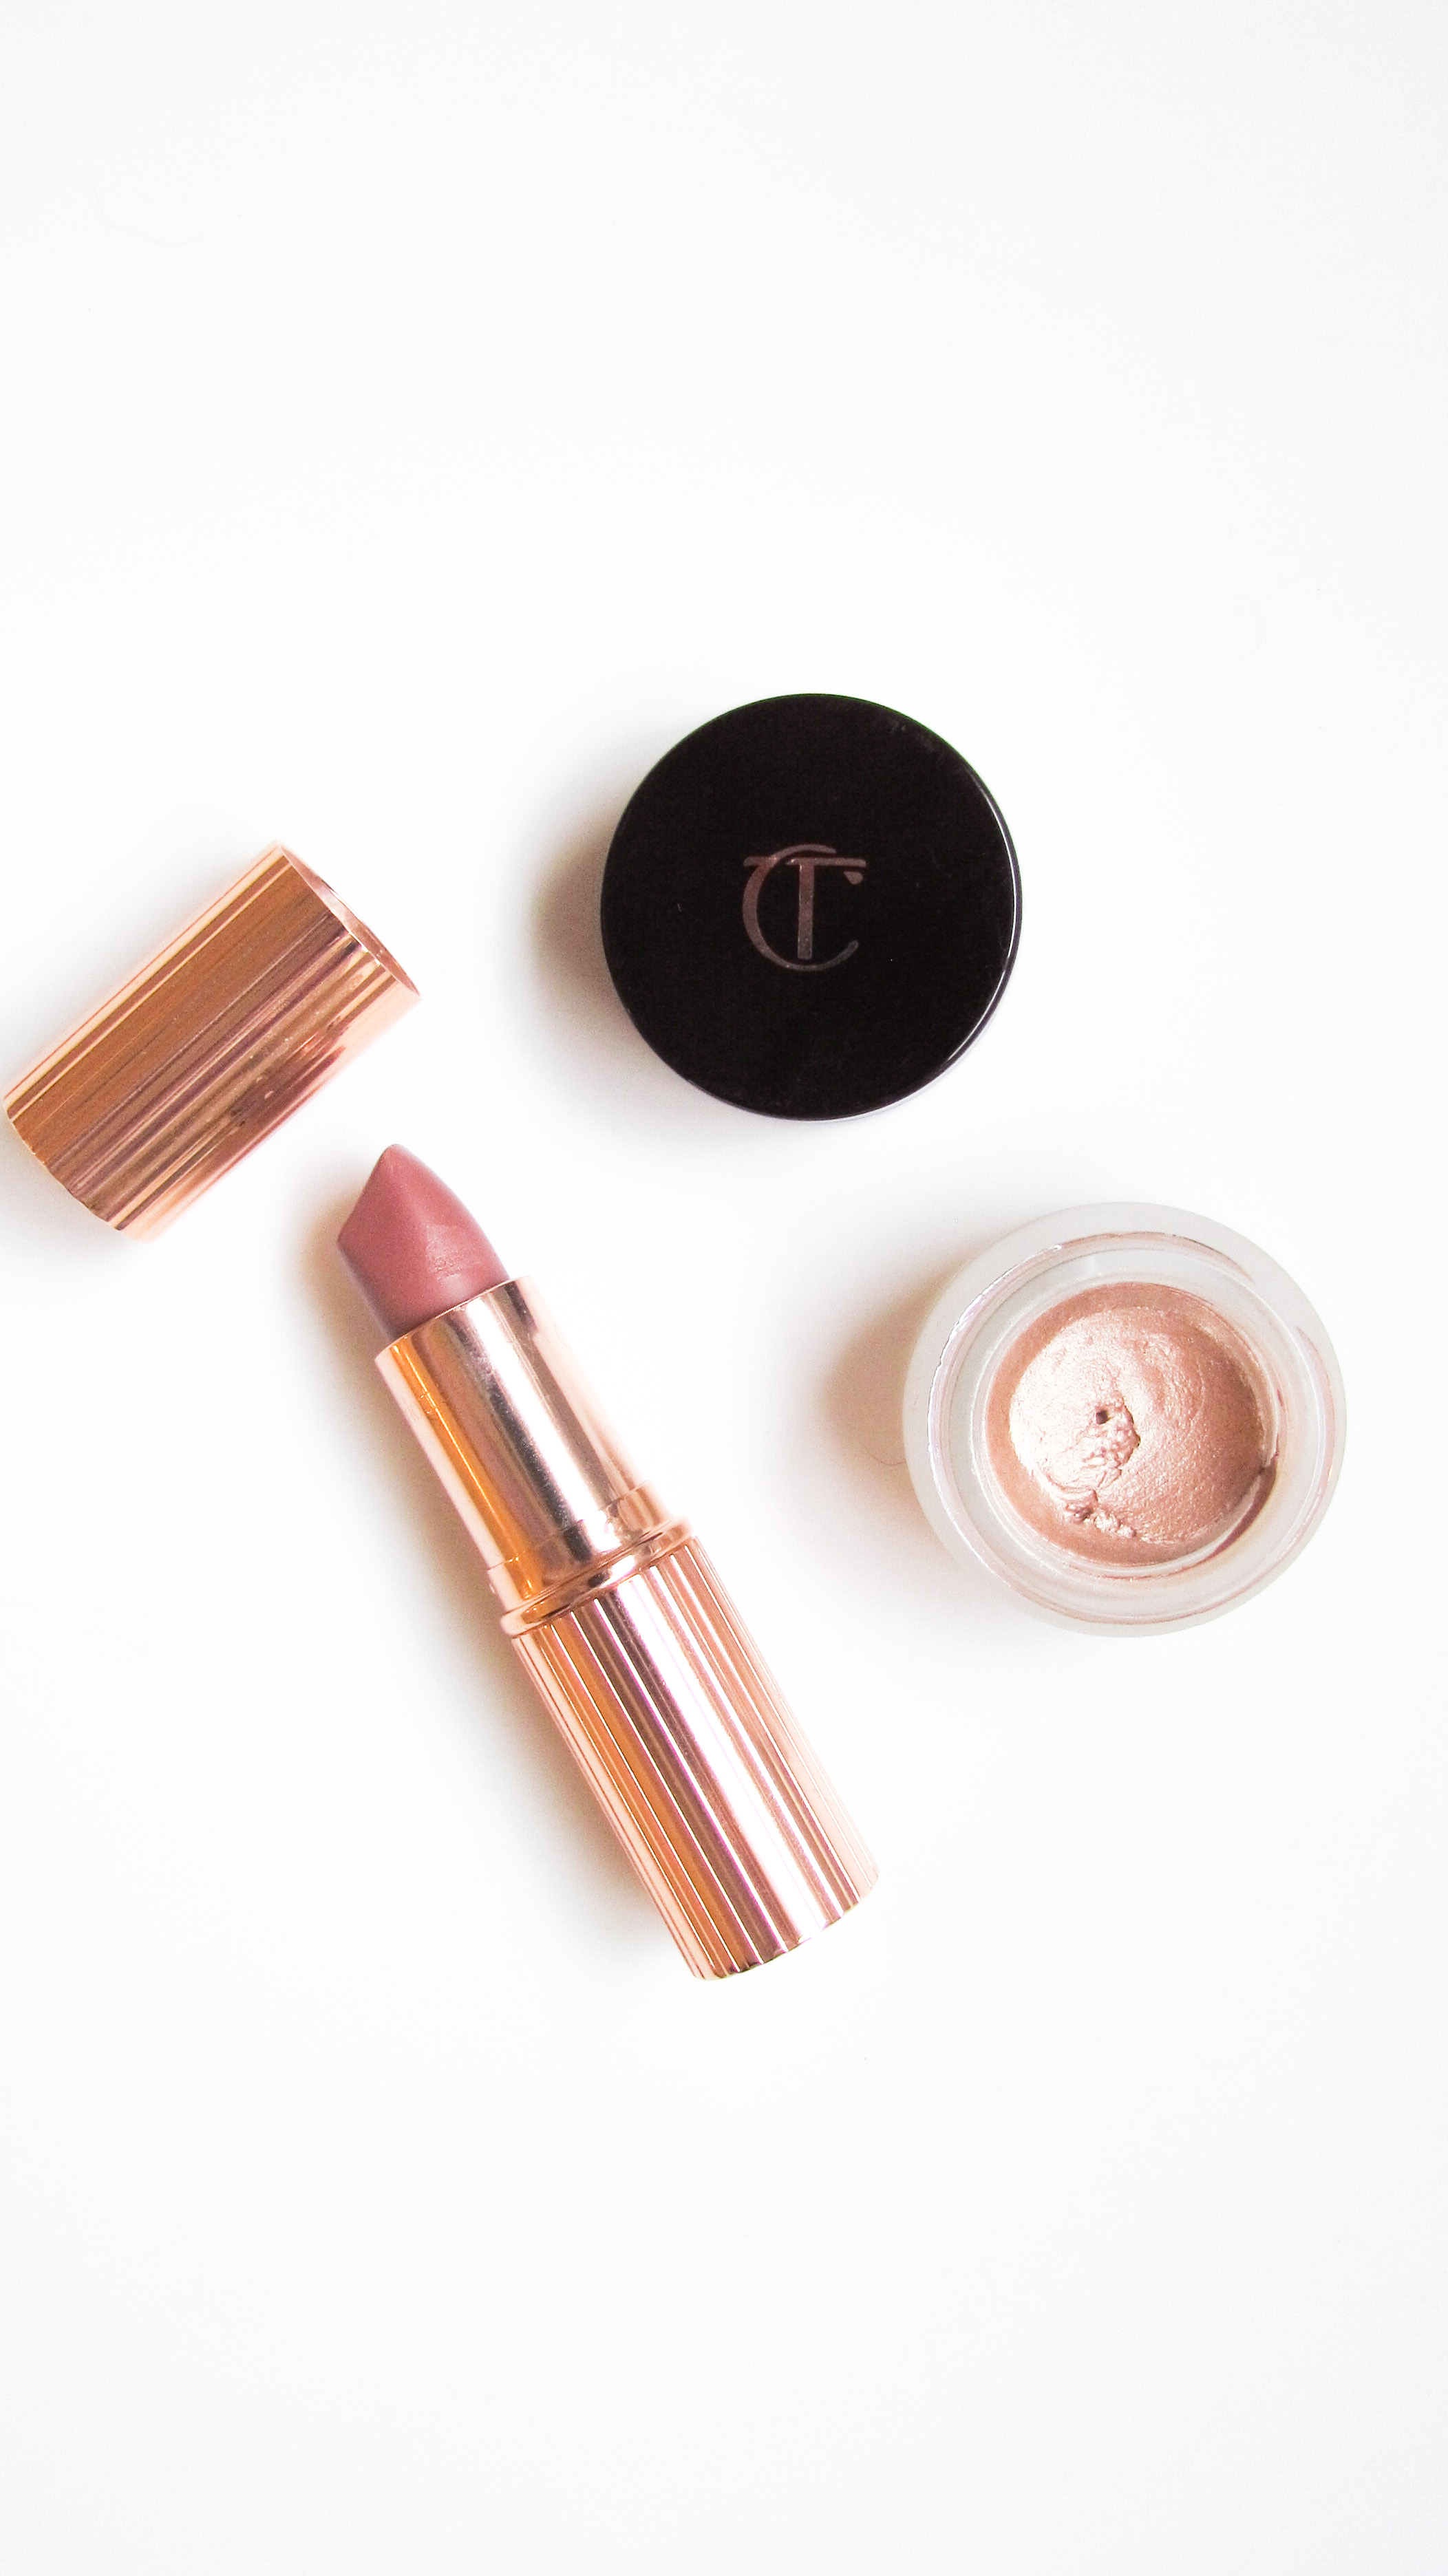 Charlotte Tilbury Matte Revolution Lipstick in Very Victoria and Eyes to Mesmerize Eye shadow in Jean - Southern New Yorker